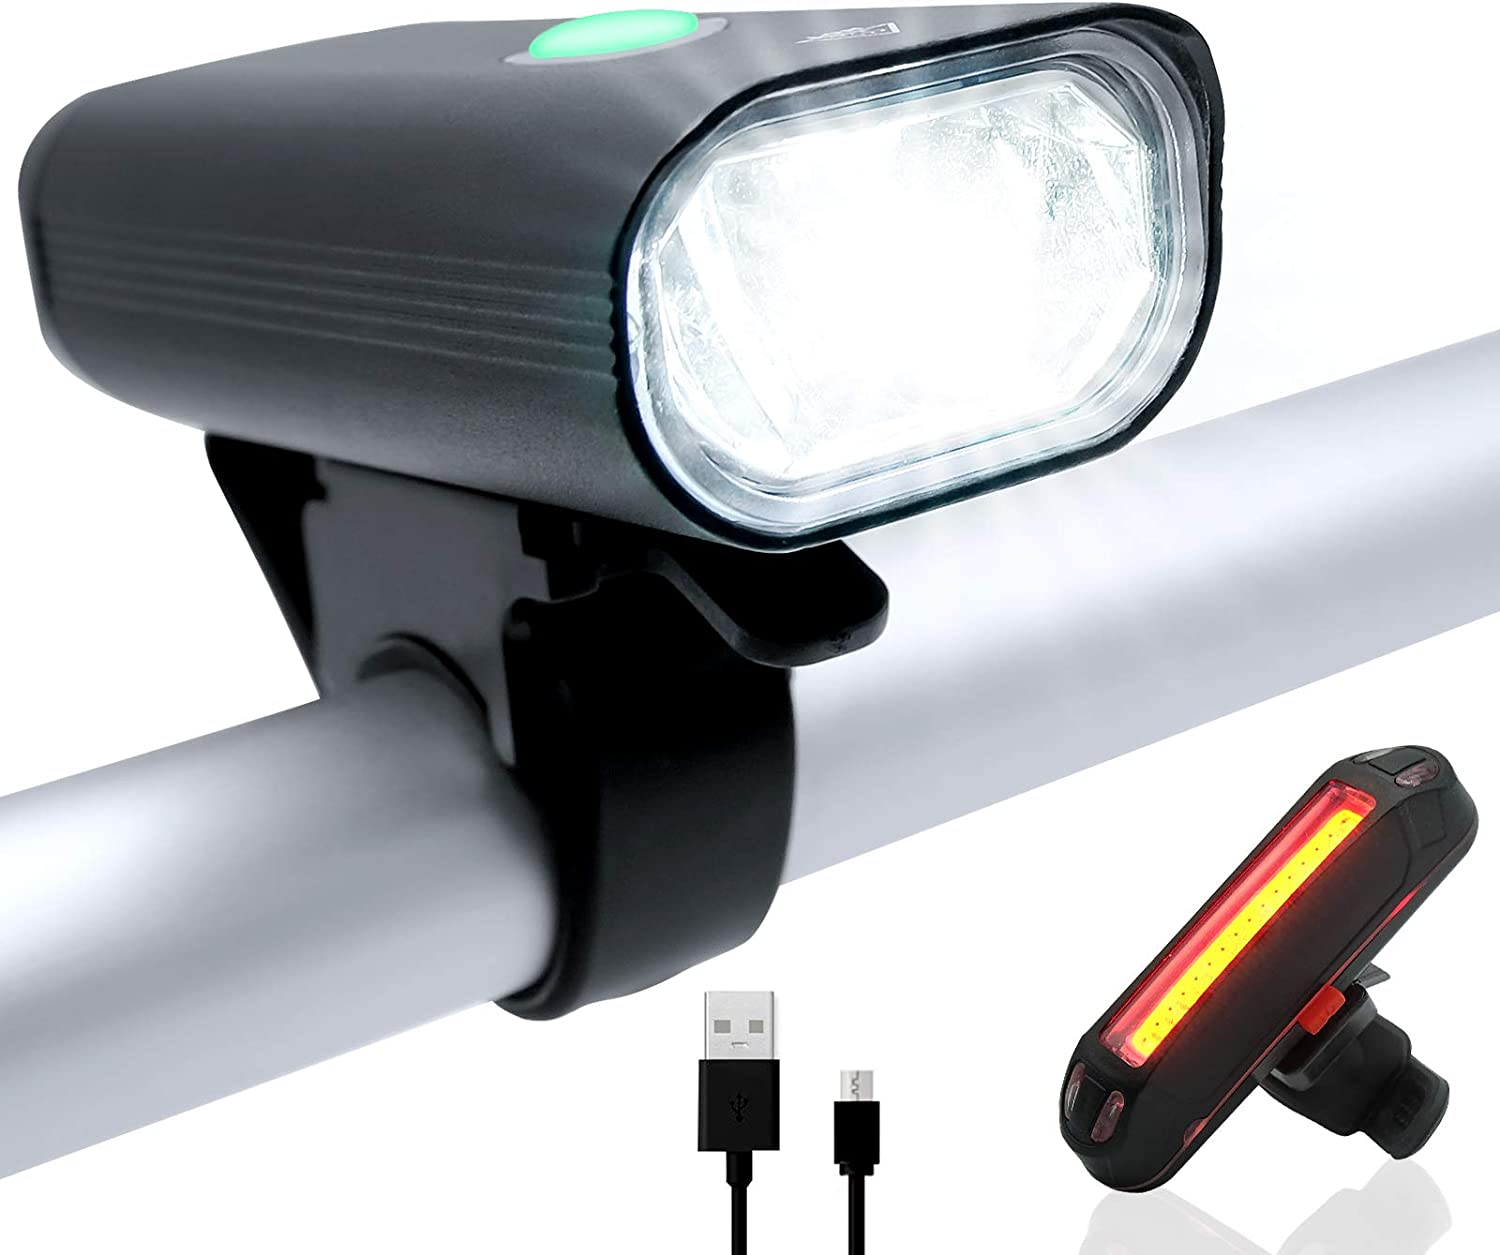 WILNARA 2021 new Bike Lights Set Gorgeous Bicycle Recharge Front Tail USB